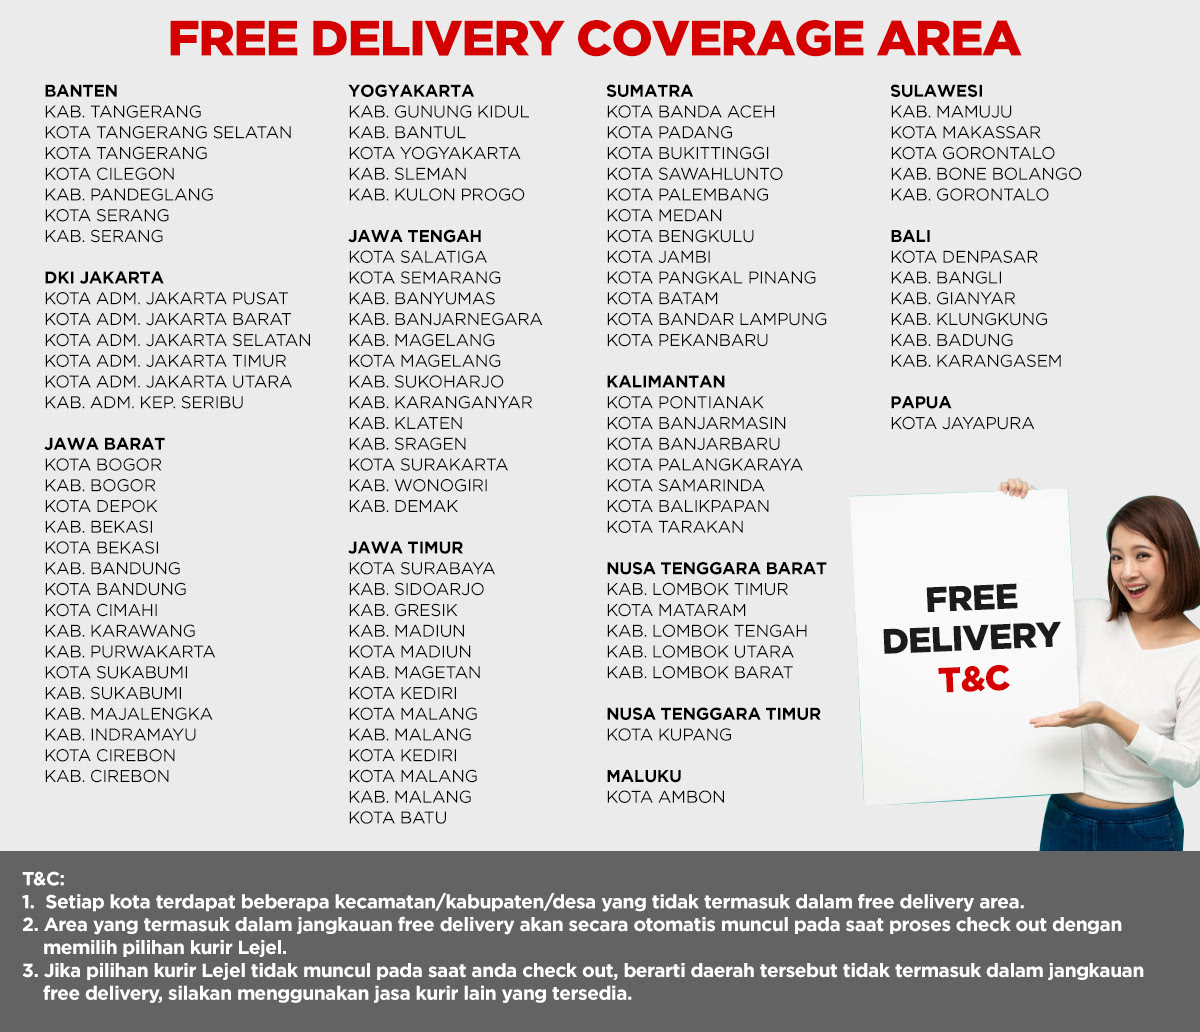 free-delivery-coverage